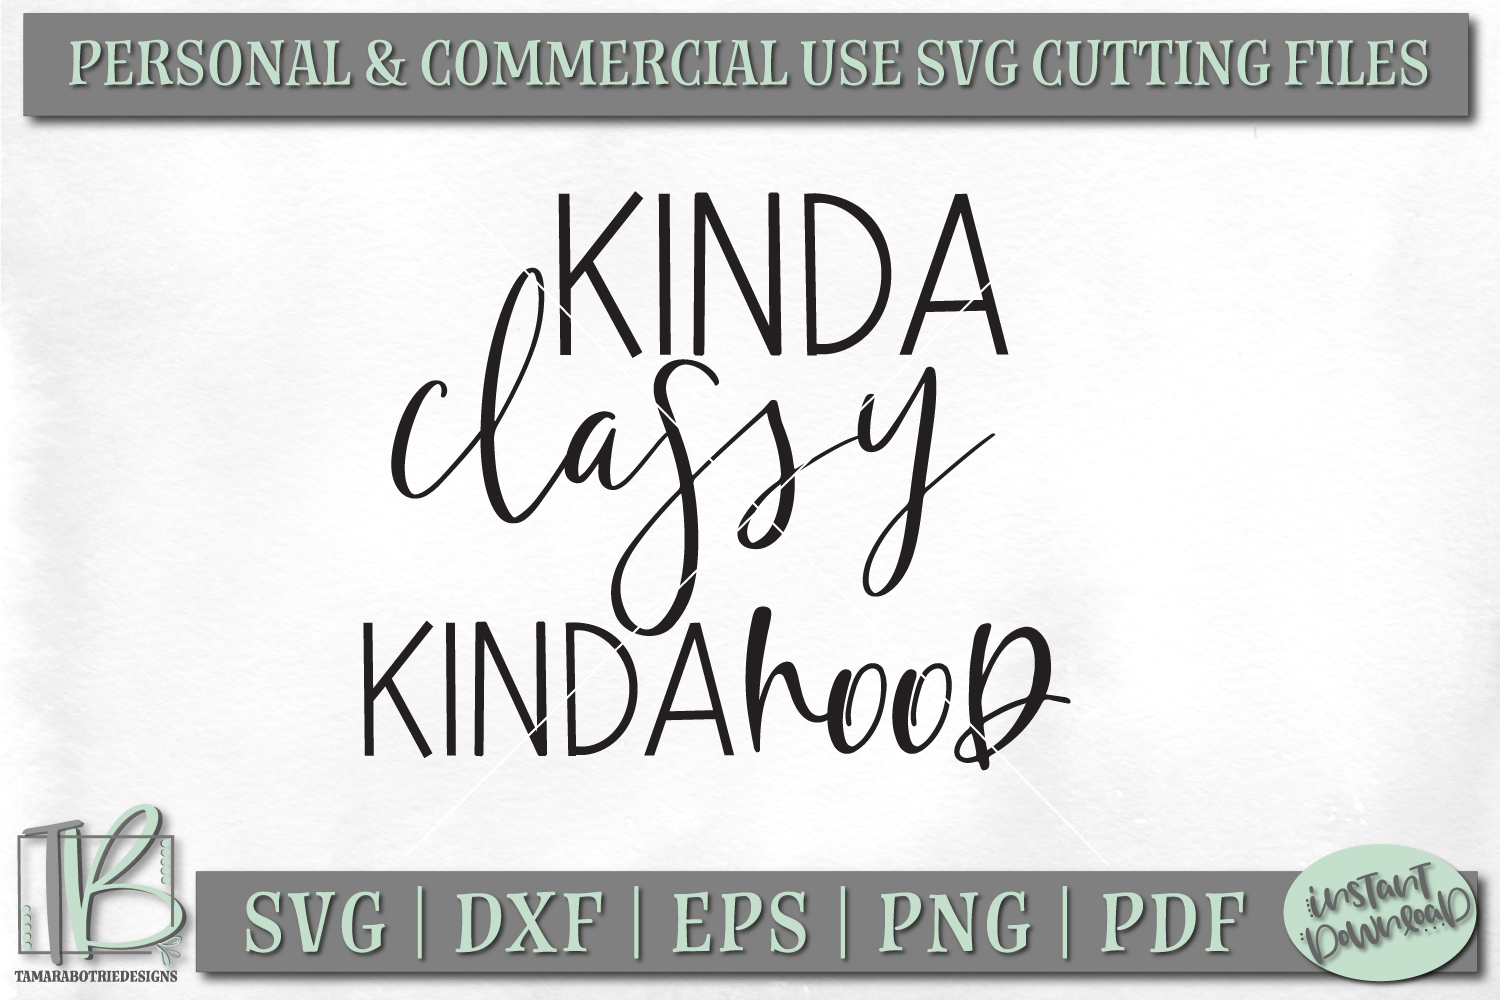 Kinda Classy Kinda Hood SVG Cutting File example image 2